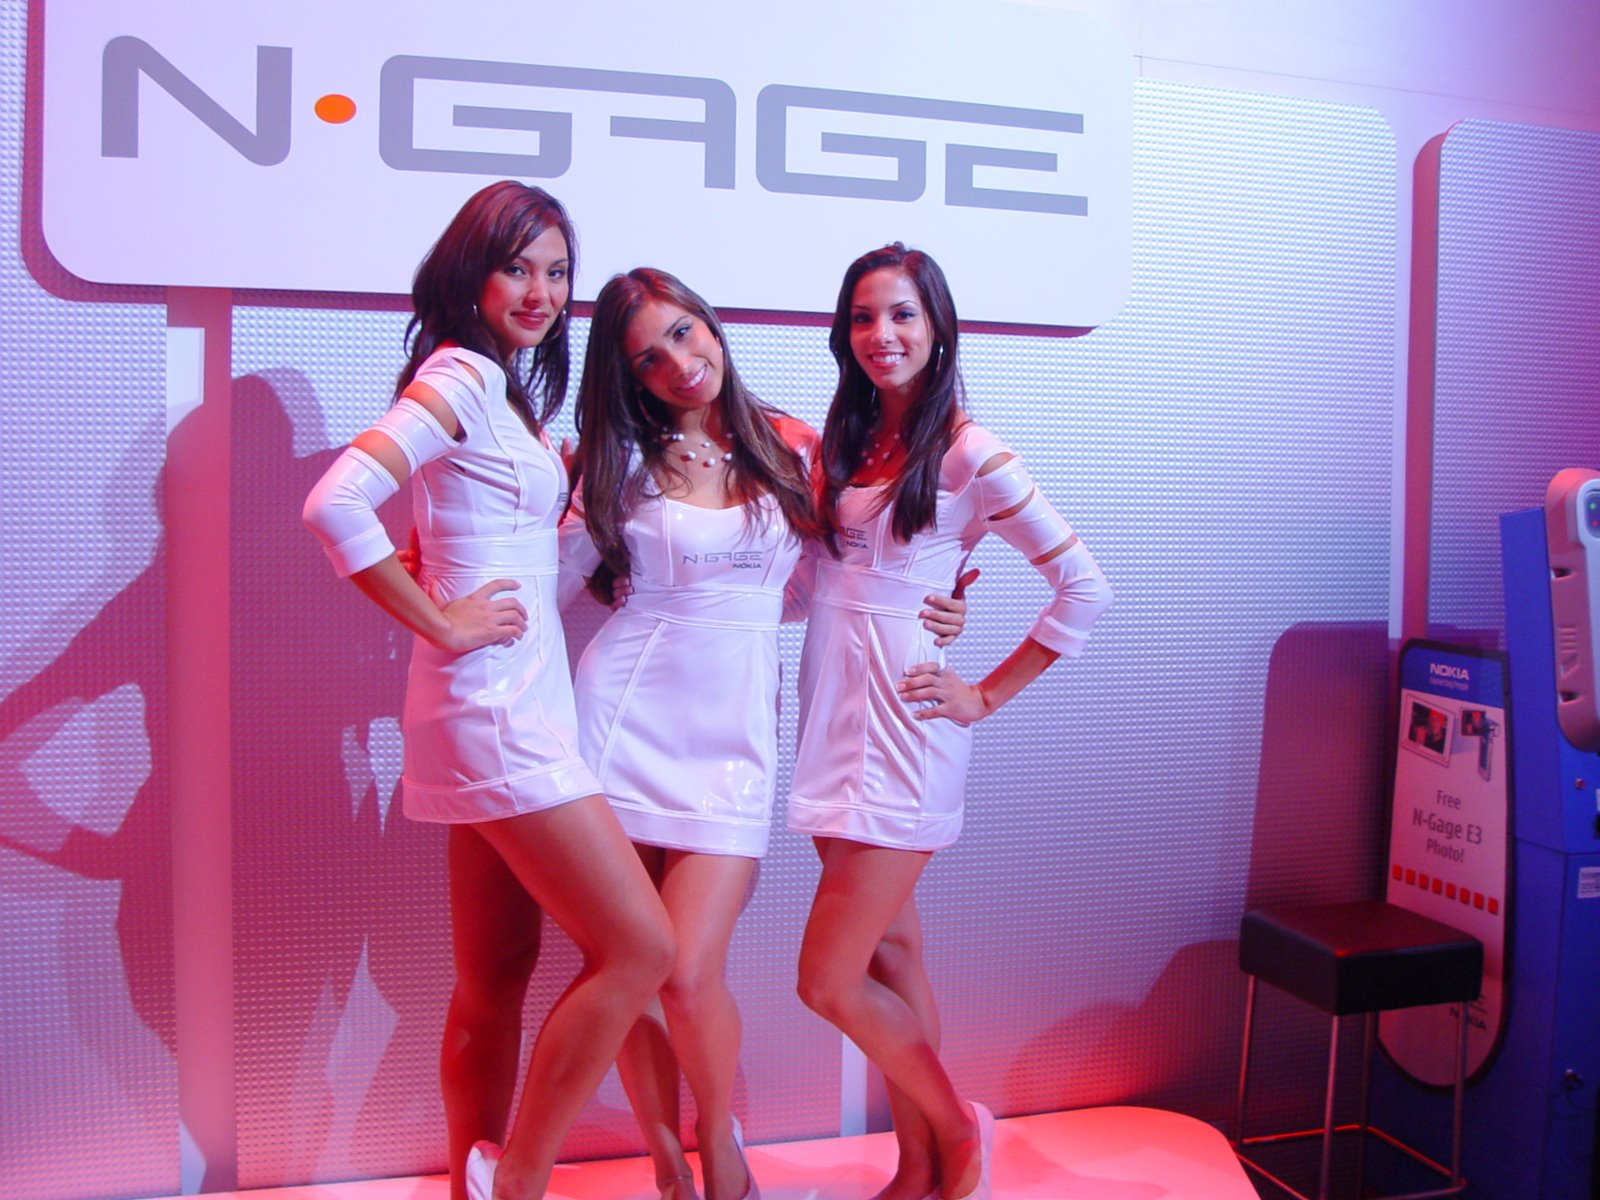 Three attractive women standing in front of a Nokia N-Gage sign